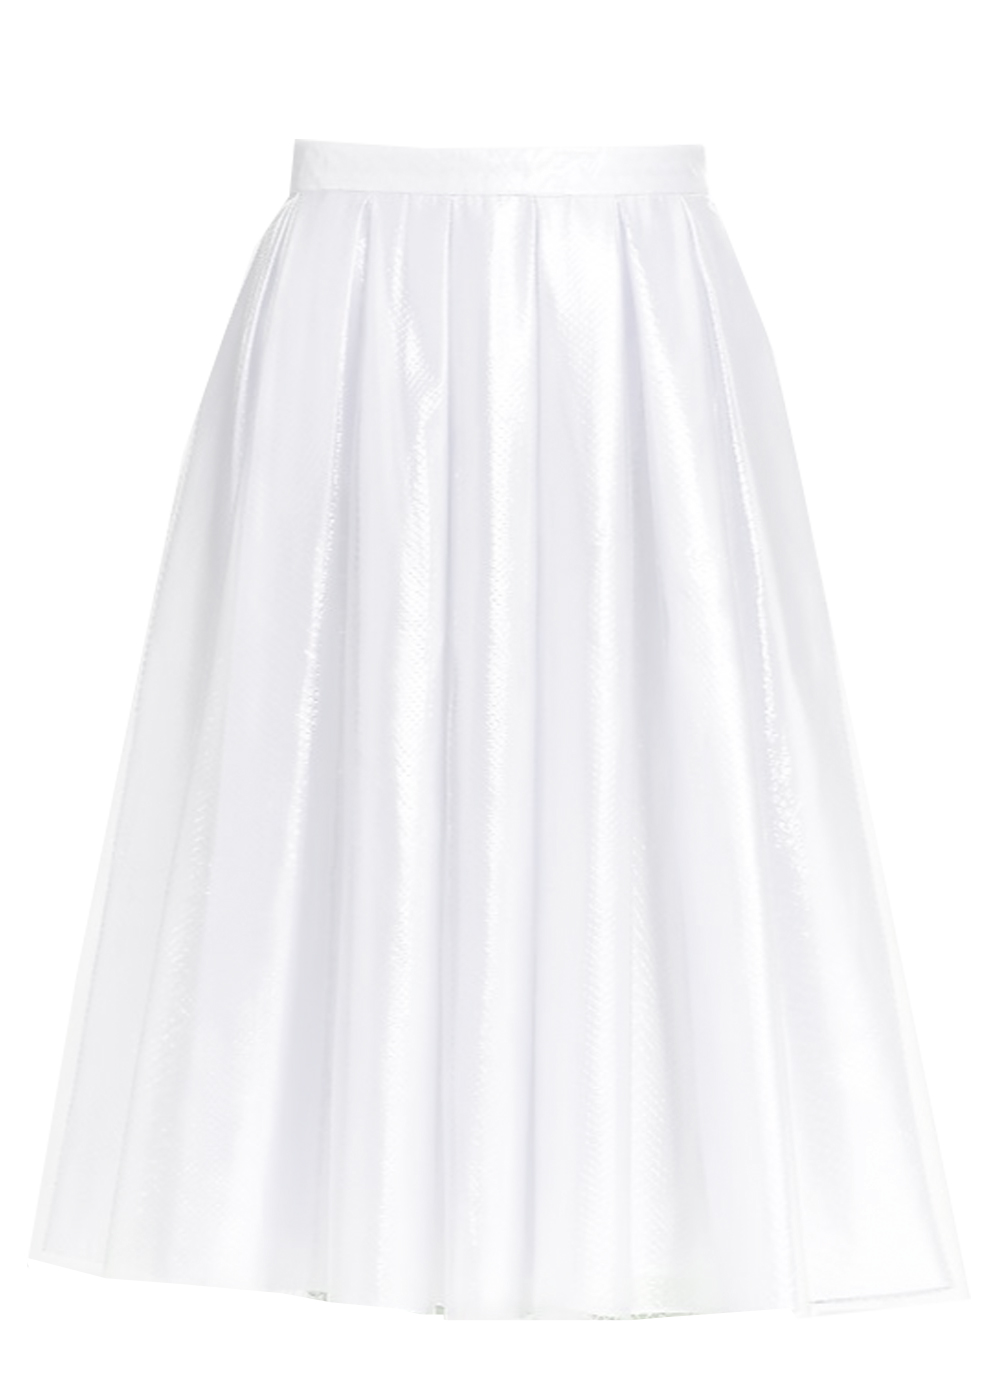 Pleated White Satin Skirt with sheer overlay – Elizabeth's ...